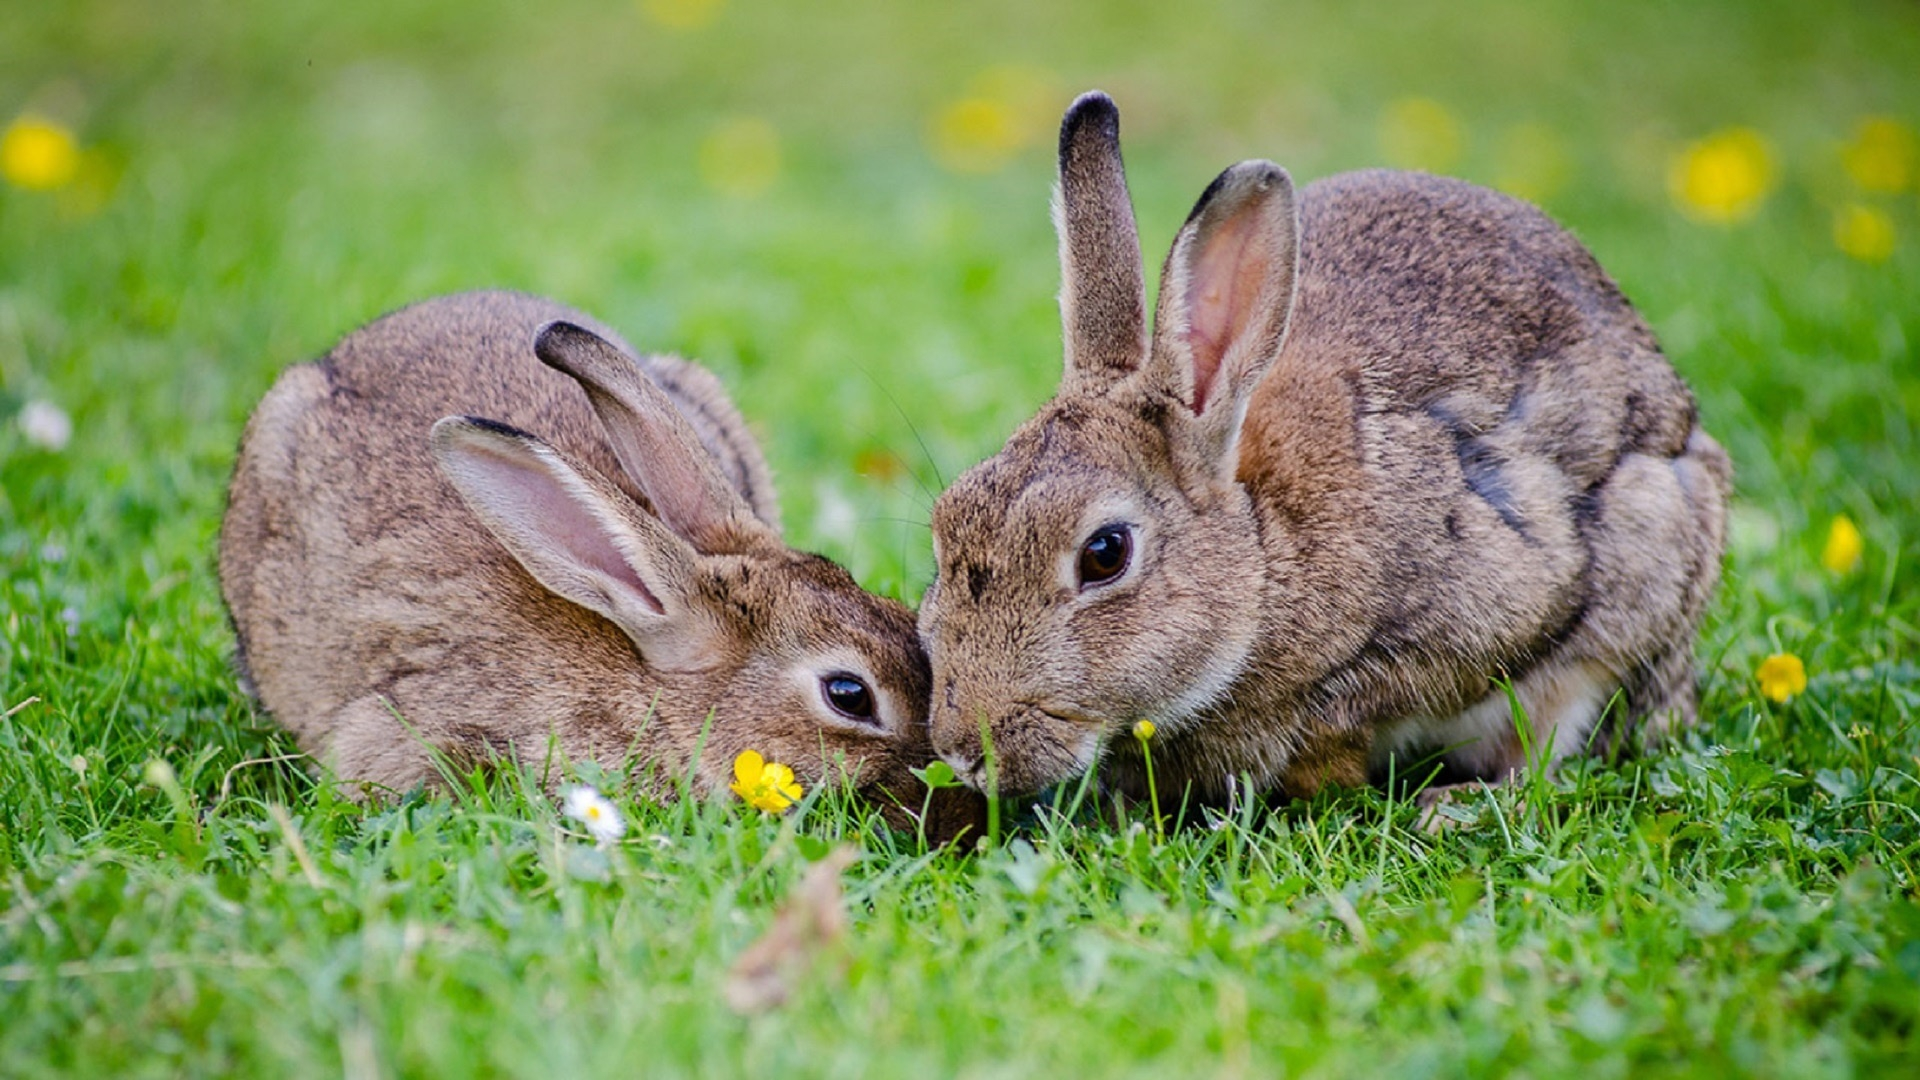 two bunnies nuzzling